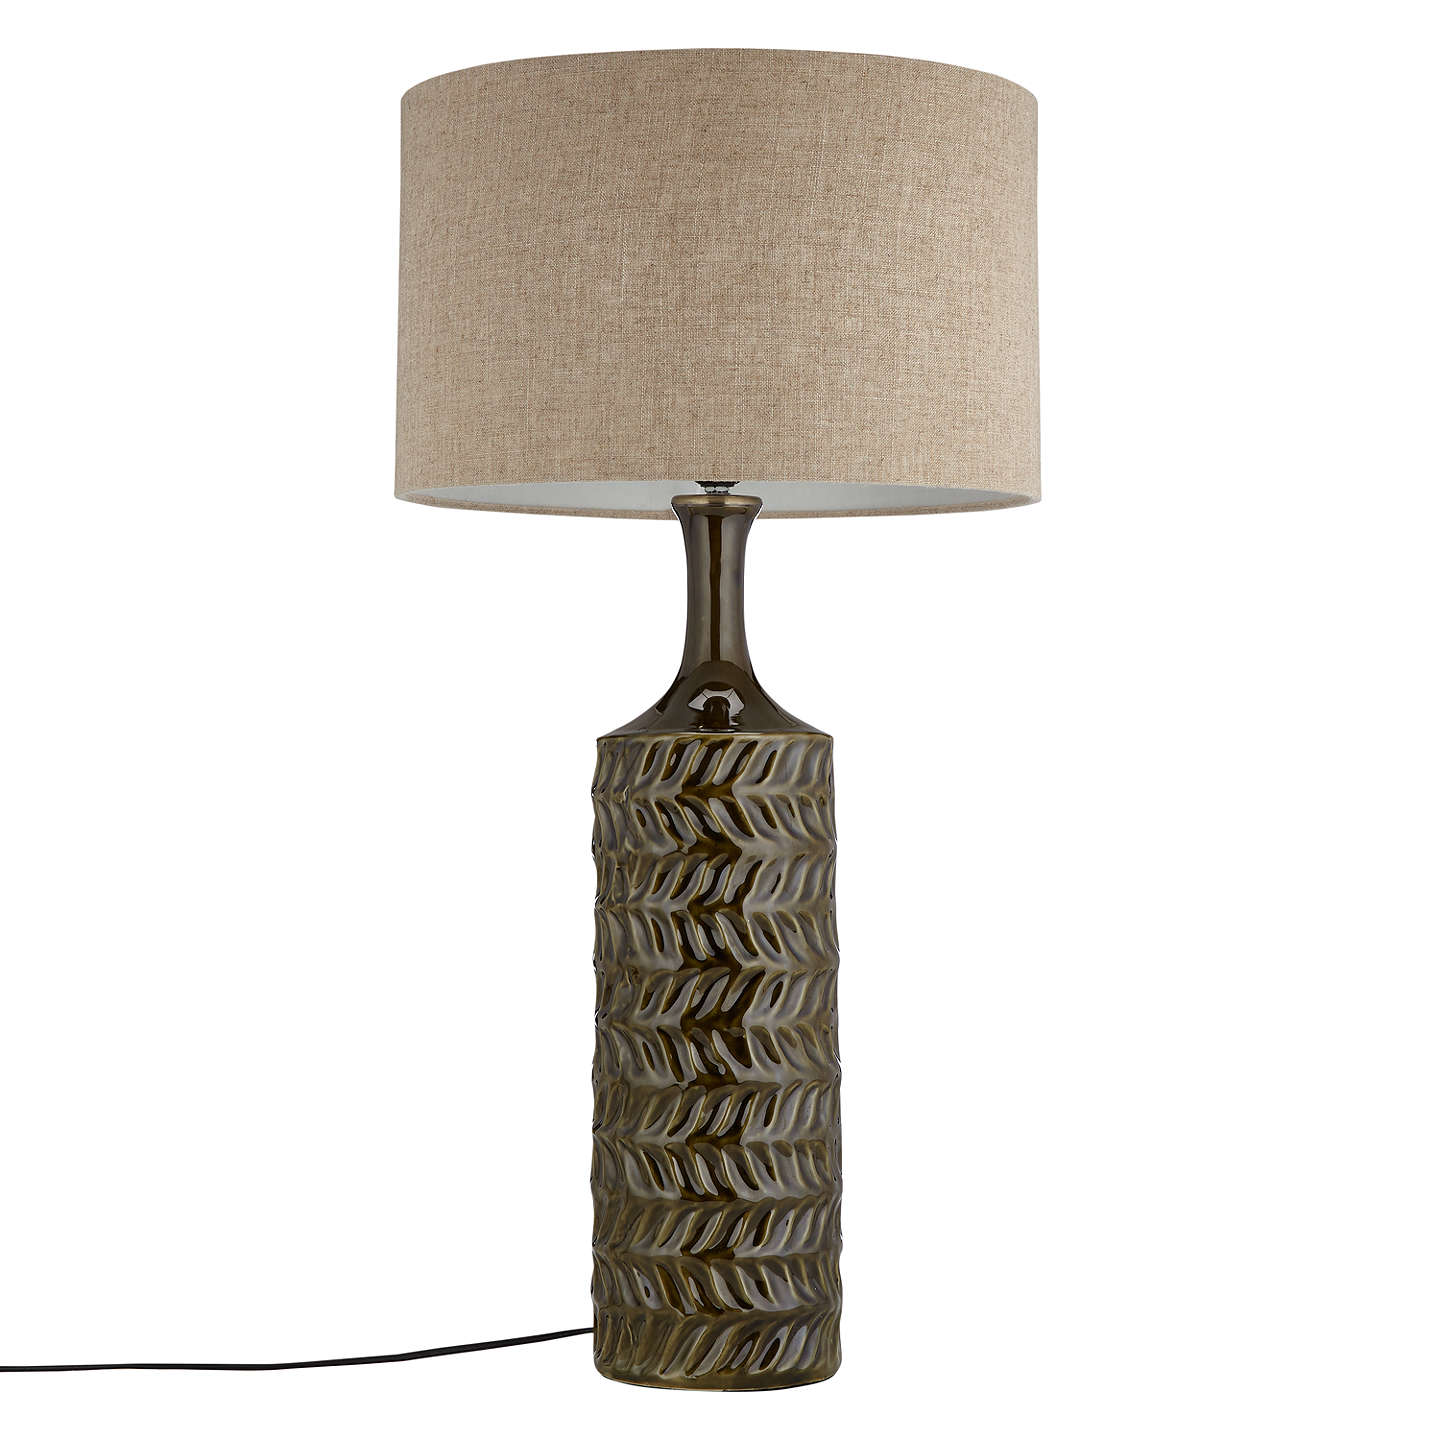 John lewis moore textured glazed table lamp green at john lewis buyjohn lewis moore textured glazed table lamp green online at johnlewis aloadofball Choice Image